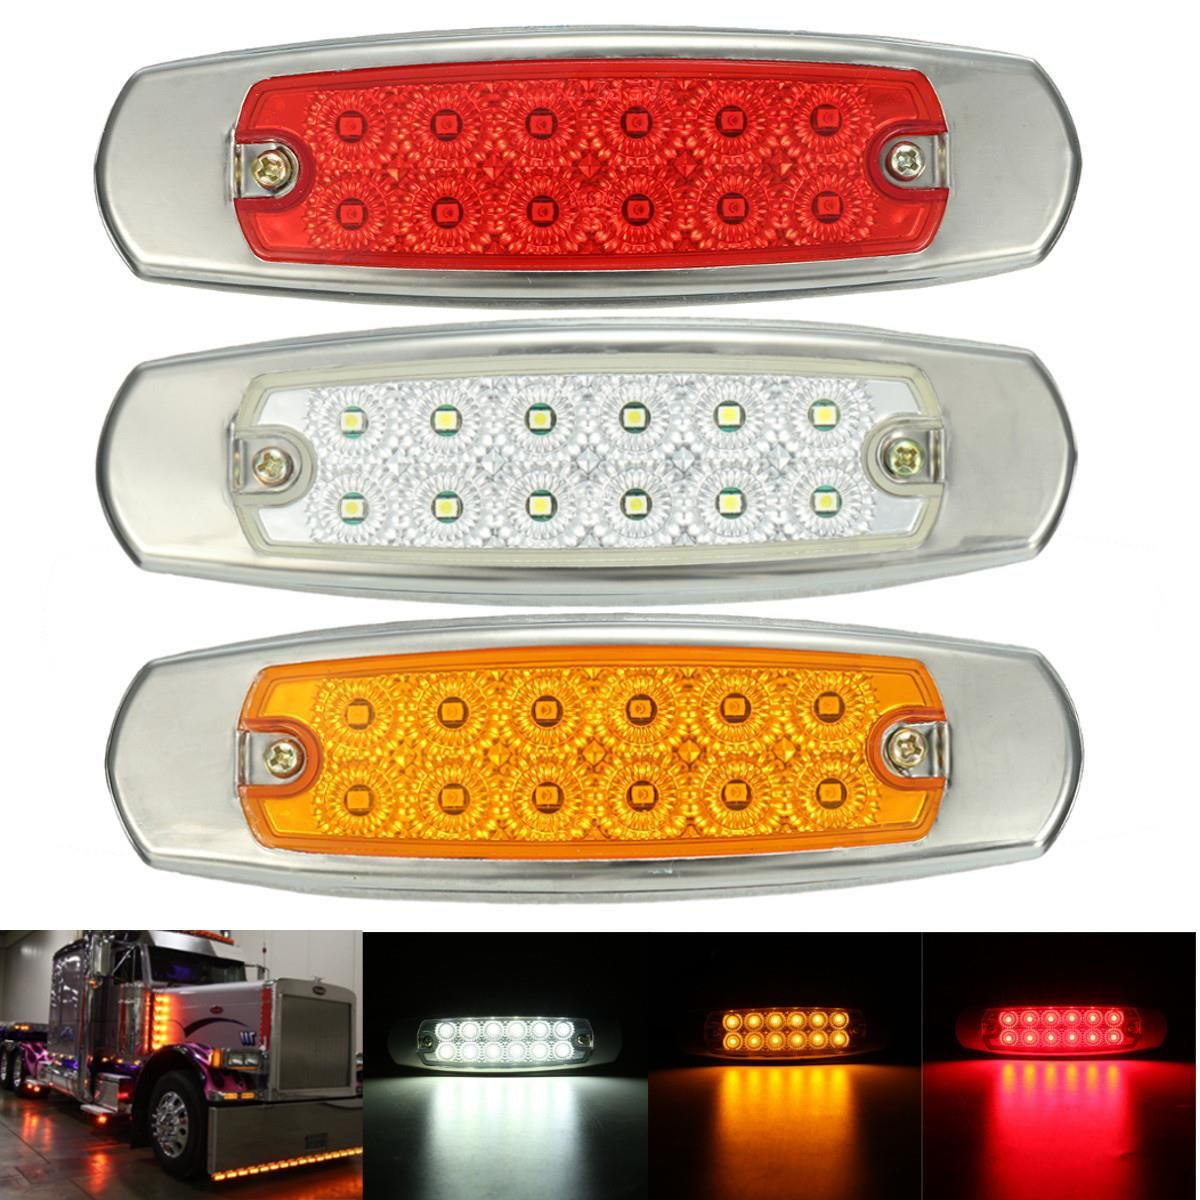 1pcs Universal 12v Dc 12 Led Side Marker Indicator Light Lamp Truck Trailers Lorry Bus Indicator Lights Truck And Trailer Lorry